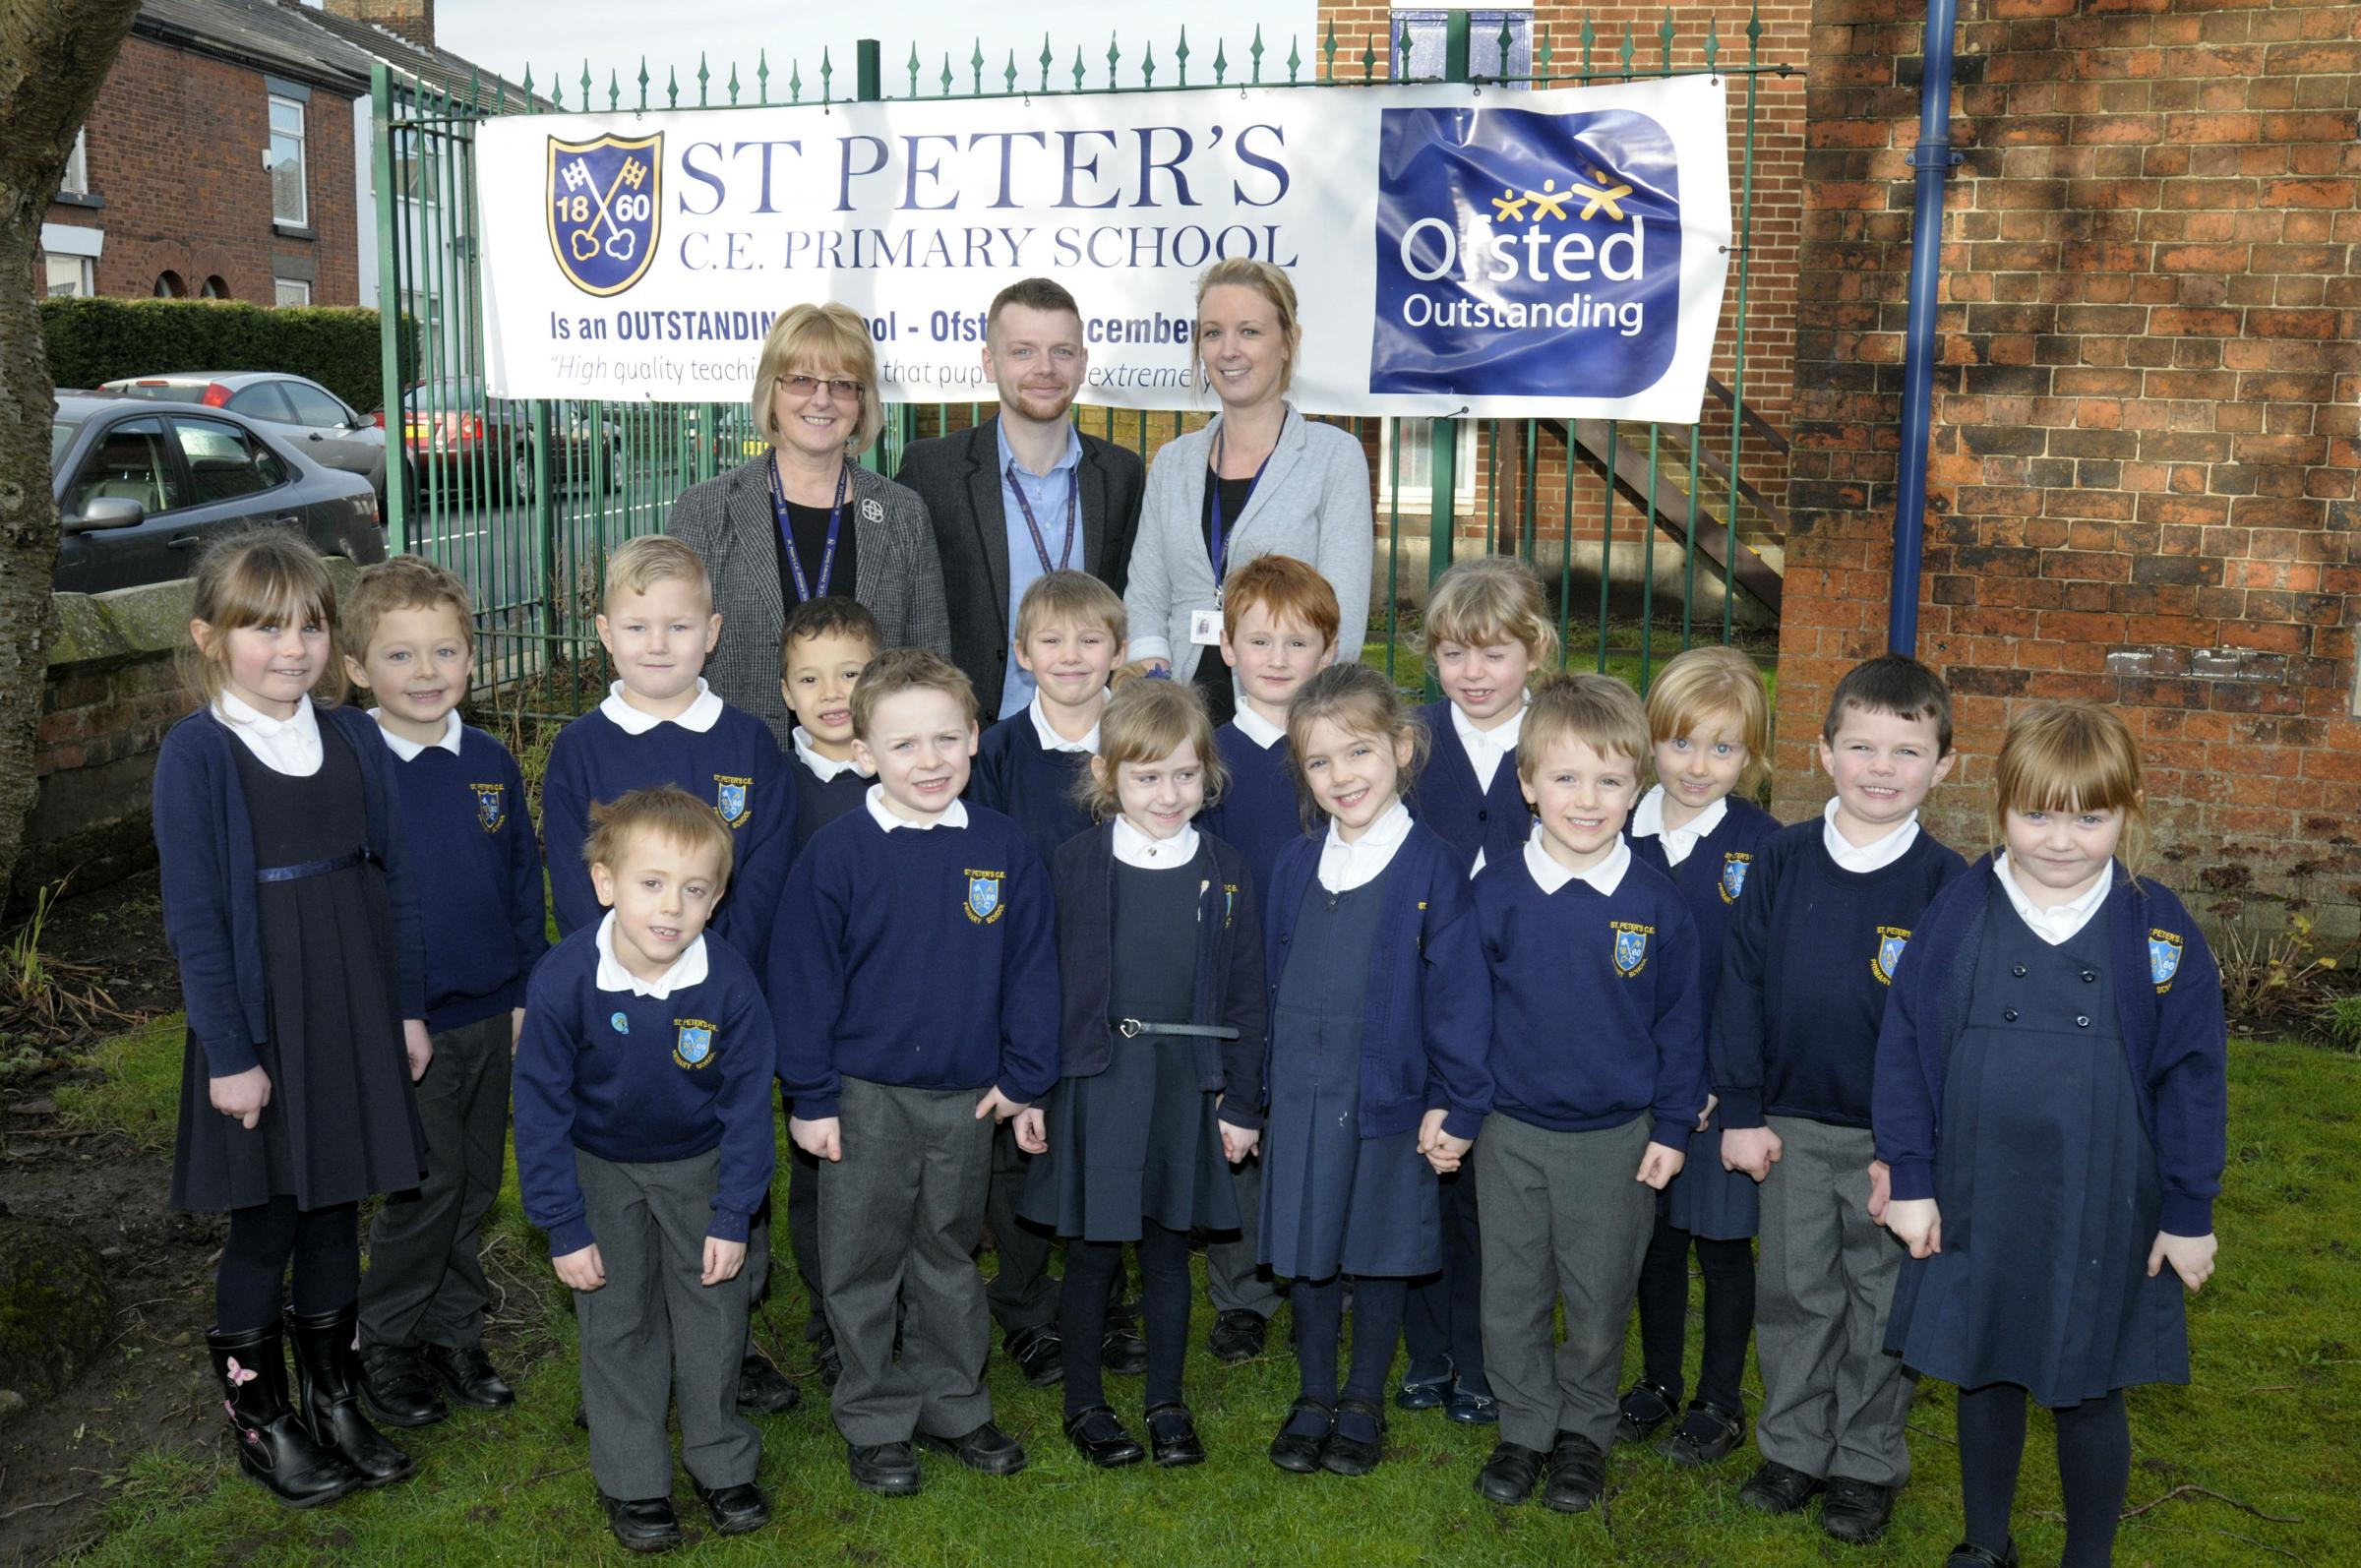 Aiming high: St Peter's pupils and teachers are being hailed for their achievements